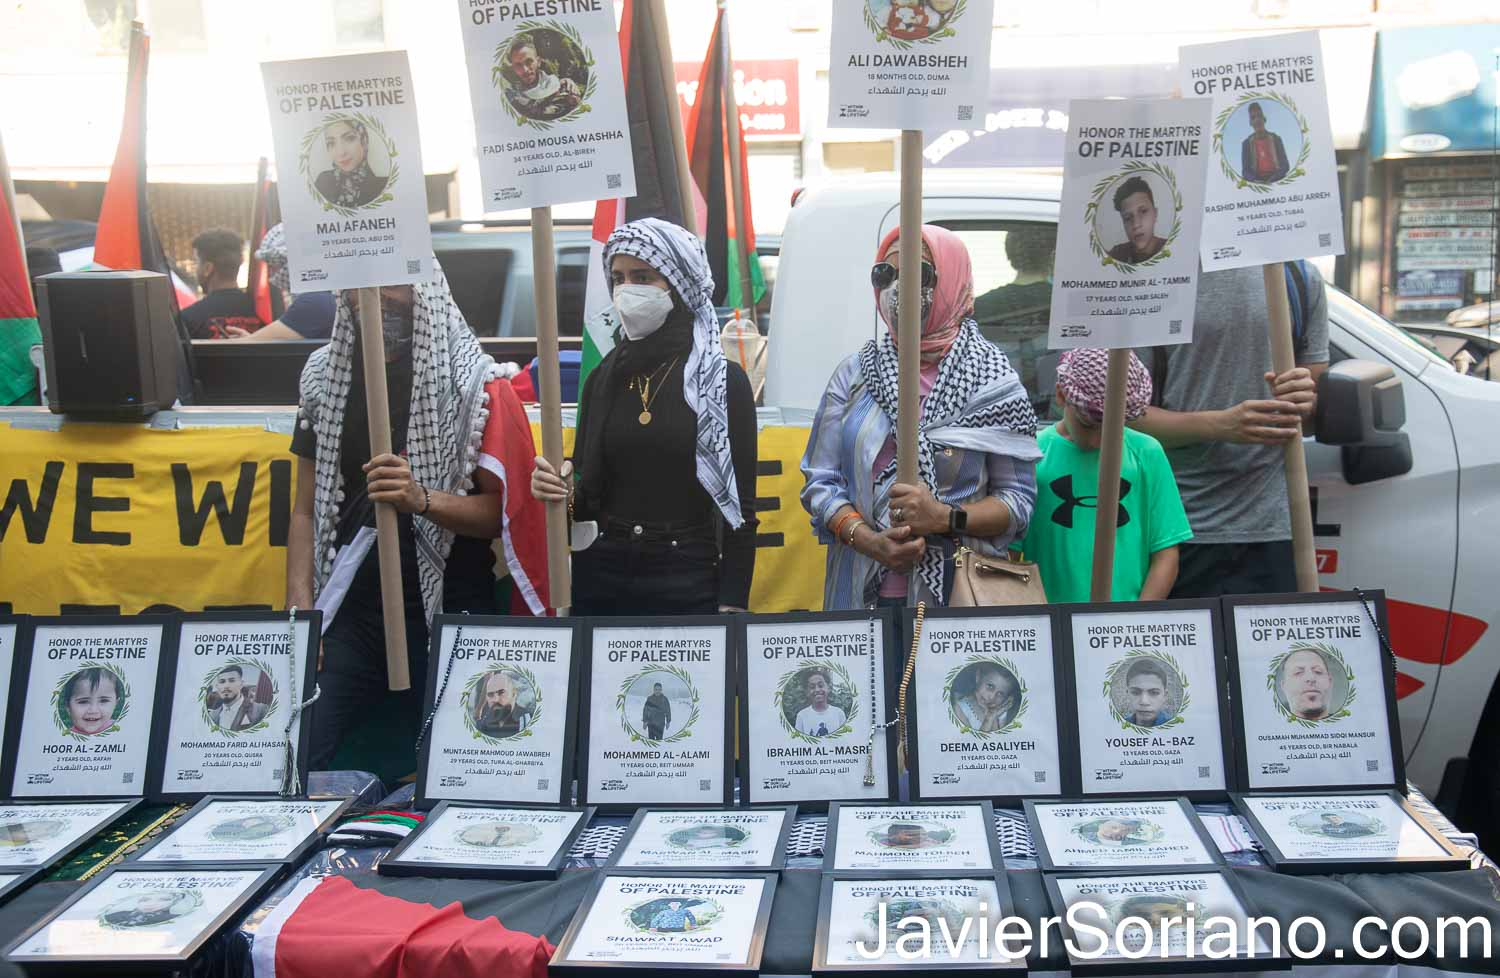 Saturday, July 31, 2021. Brooklyn, New York City – Memorial, rally and march in Bay Ridge, Brooklyn; New York City, to honor the martyrs of Palestine. THIS PHOTO: Some of the women, men and children killed by the terrorist state of Israel. Photo by Javier Soriano/www.JavierSoriano.com